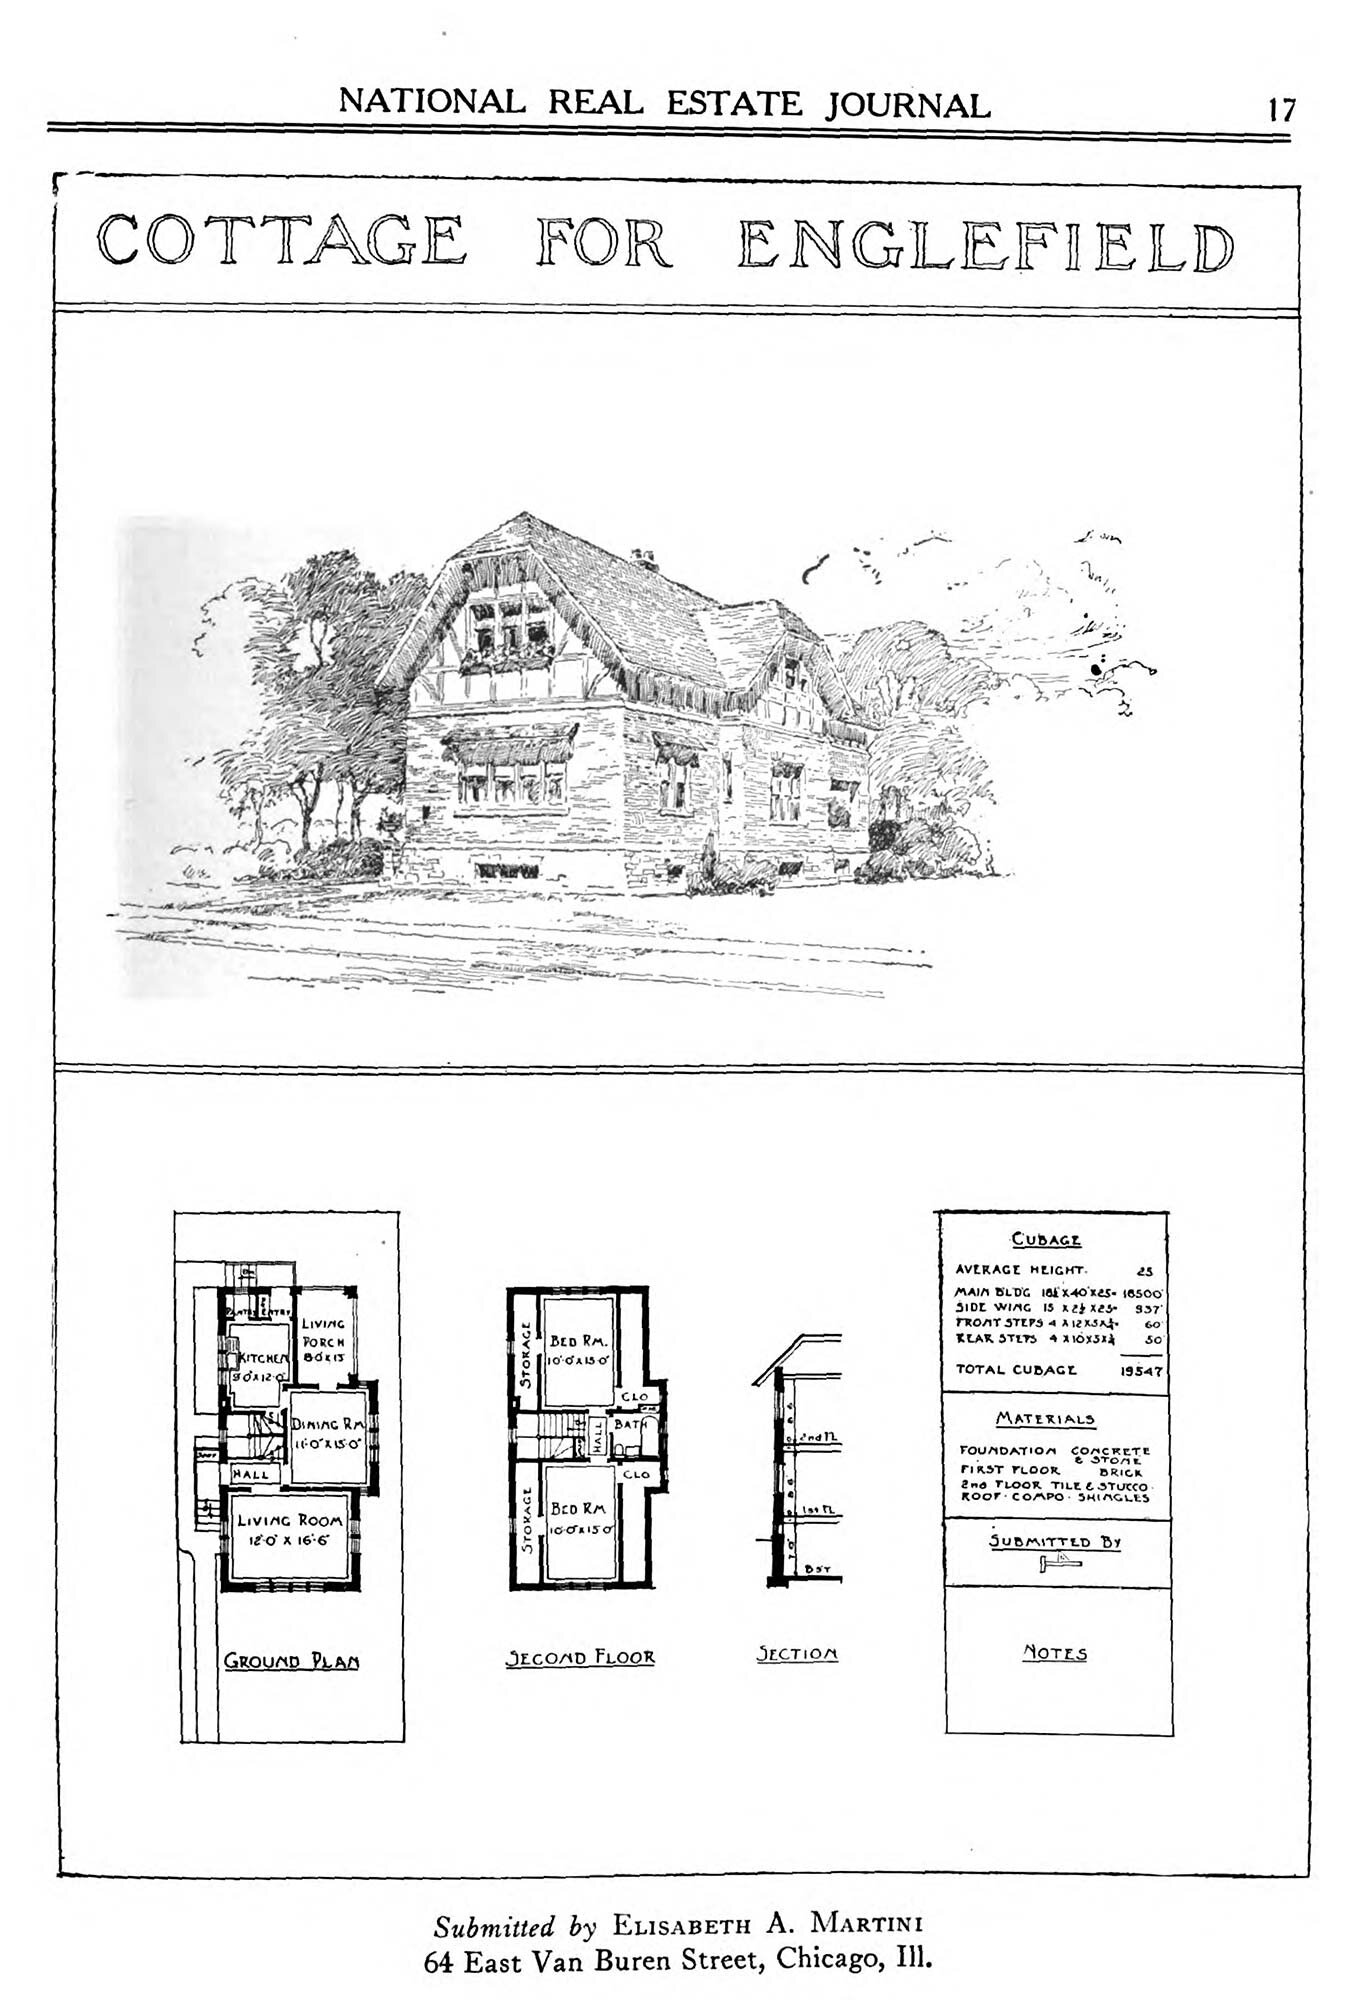 Martini's Plan for a Cottage in Englefield,  National Real Estate Journal , 1917, p. 17.